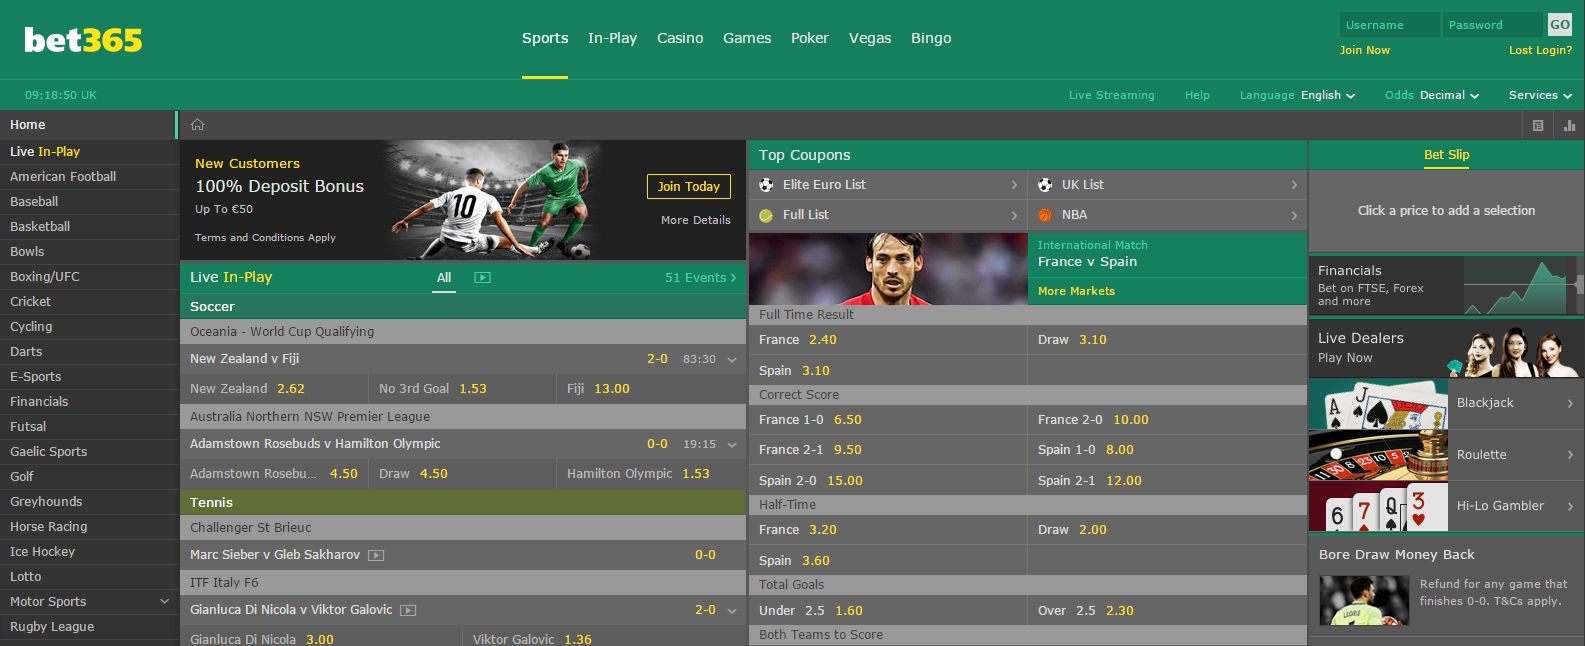 Bet365 odds analysis